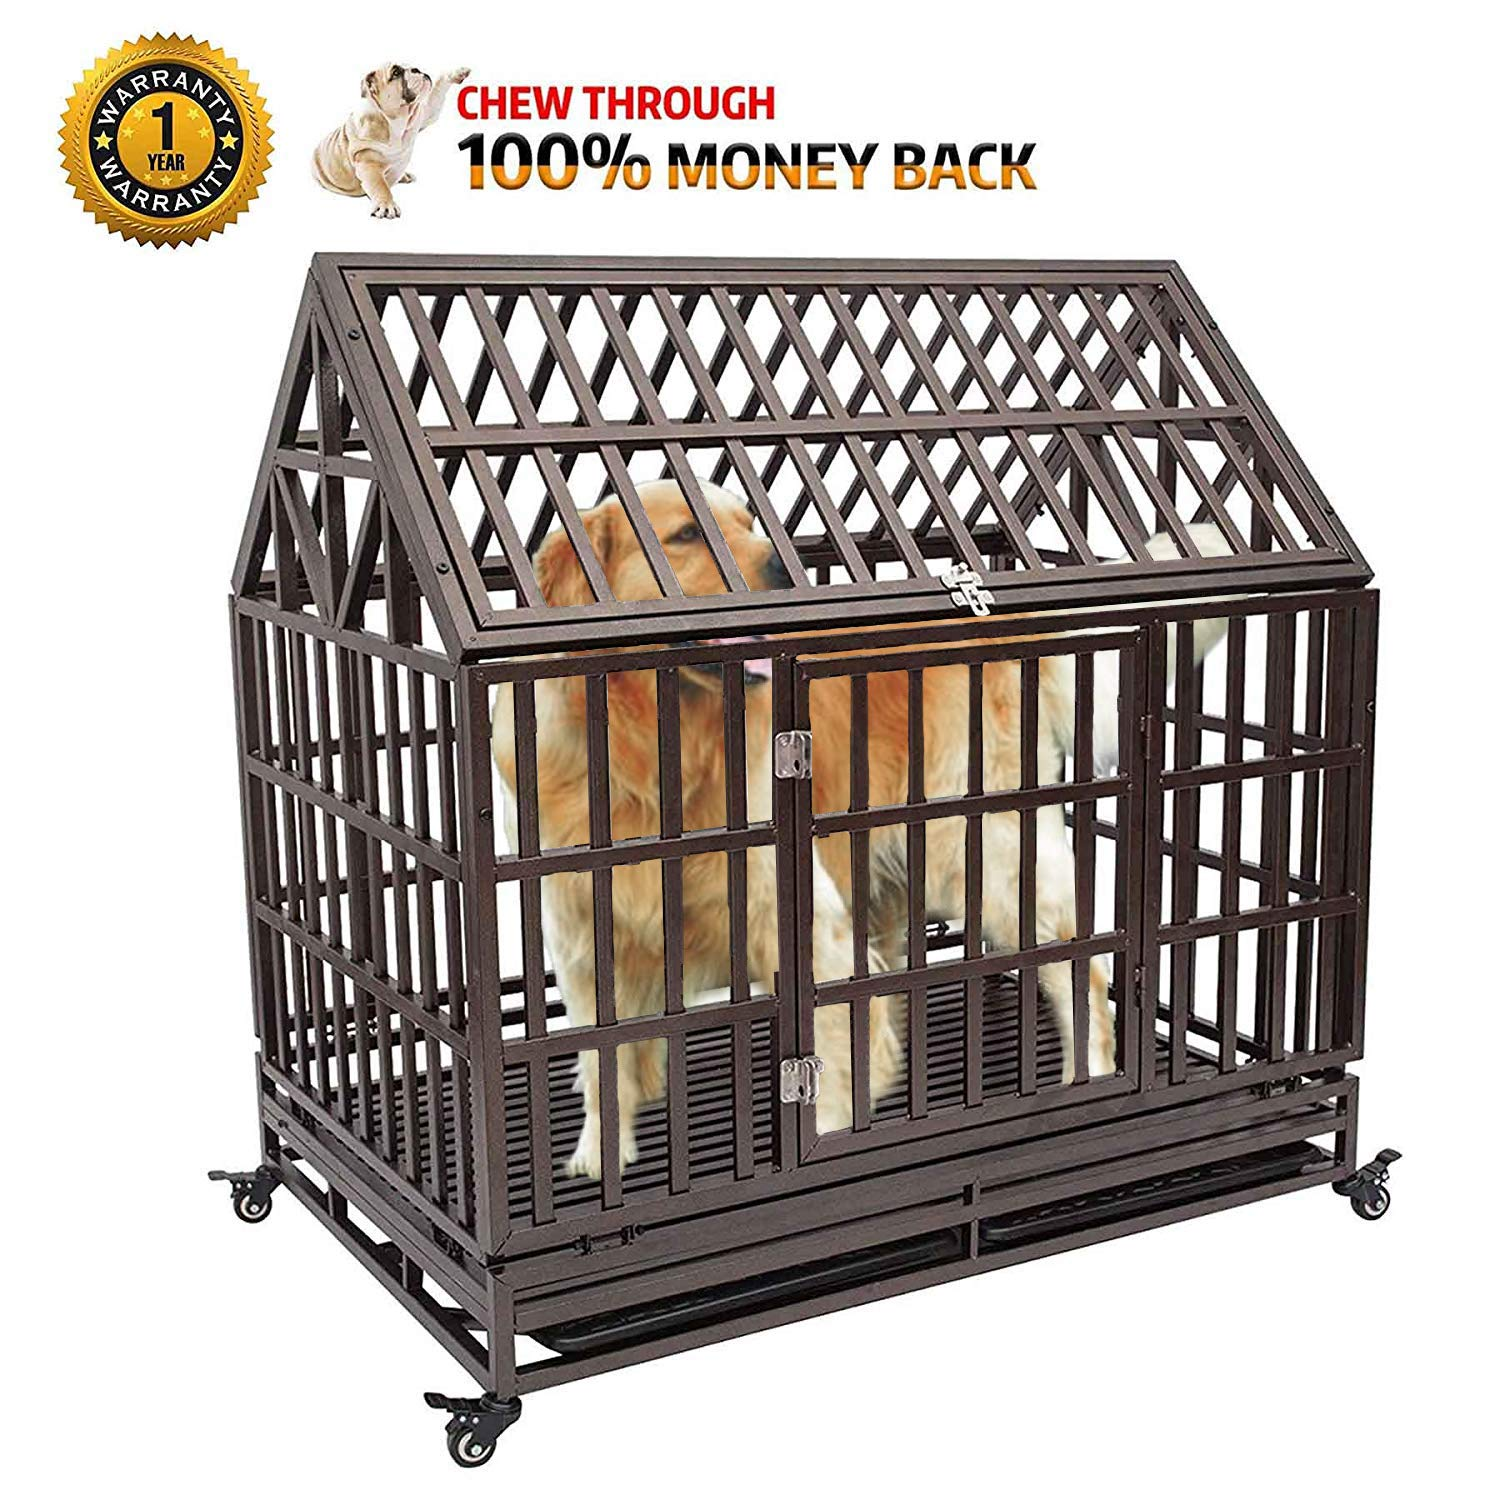 Haige Pet Your Pet Nanny 38'' Heavy Duty Dog Crate Cage Kennel Playpen Large Roof Steel Strong Metal for Medium and Large Dogs with Lock and Four Lockable Wheels